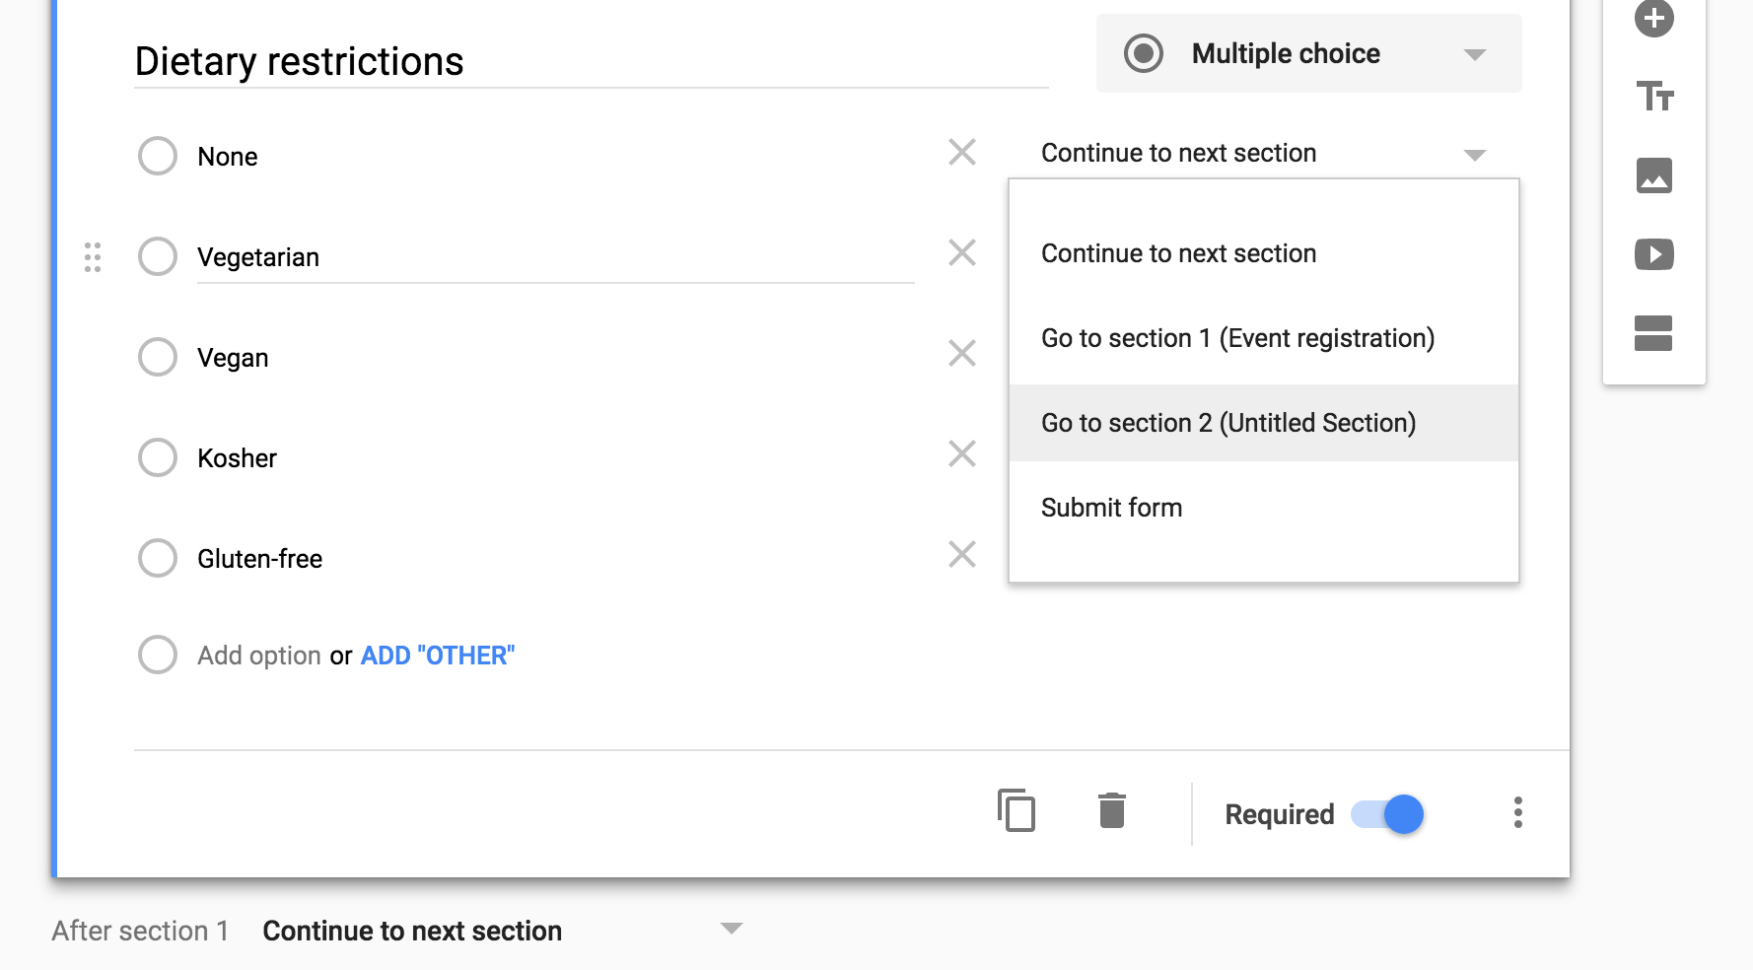 Generate Google Form From Spreadsheet With Regard To Google Forms Guide: Everything You Need To Make Great Forms For Free